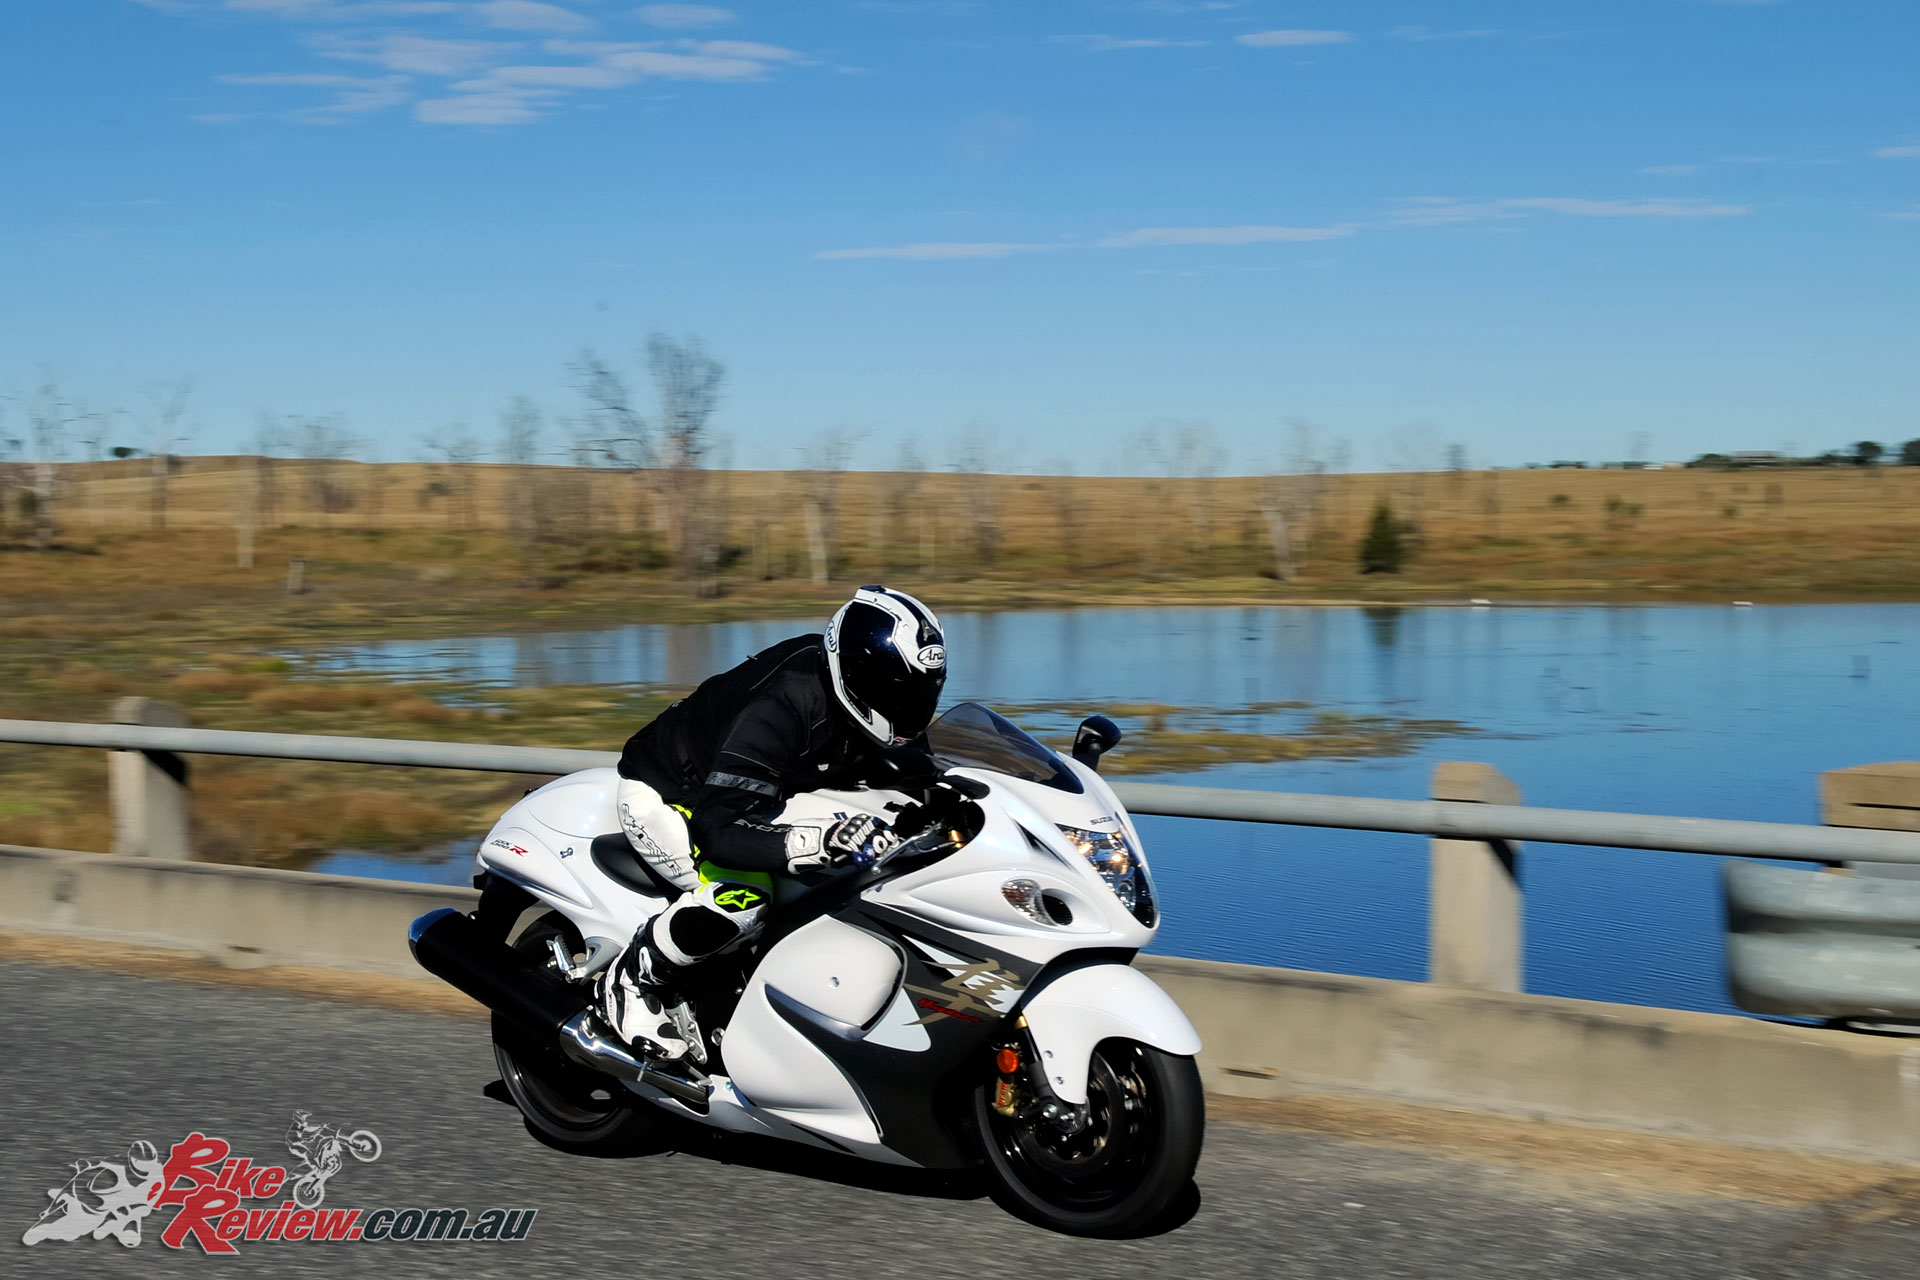 The Hayabusa isn't such a weapon with incredible performance, it's also a great sports-touring option, especially two-up